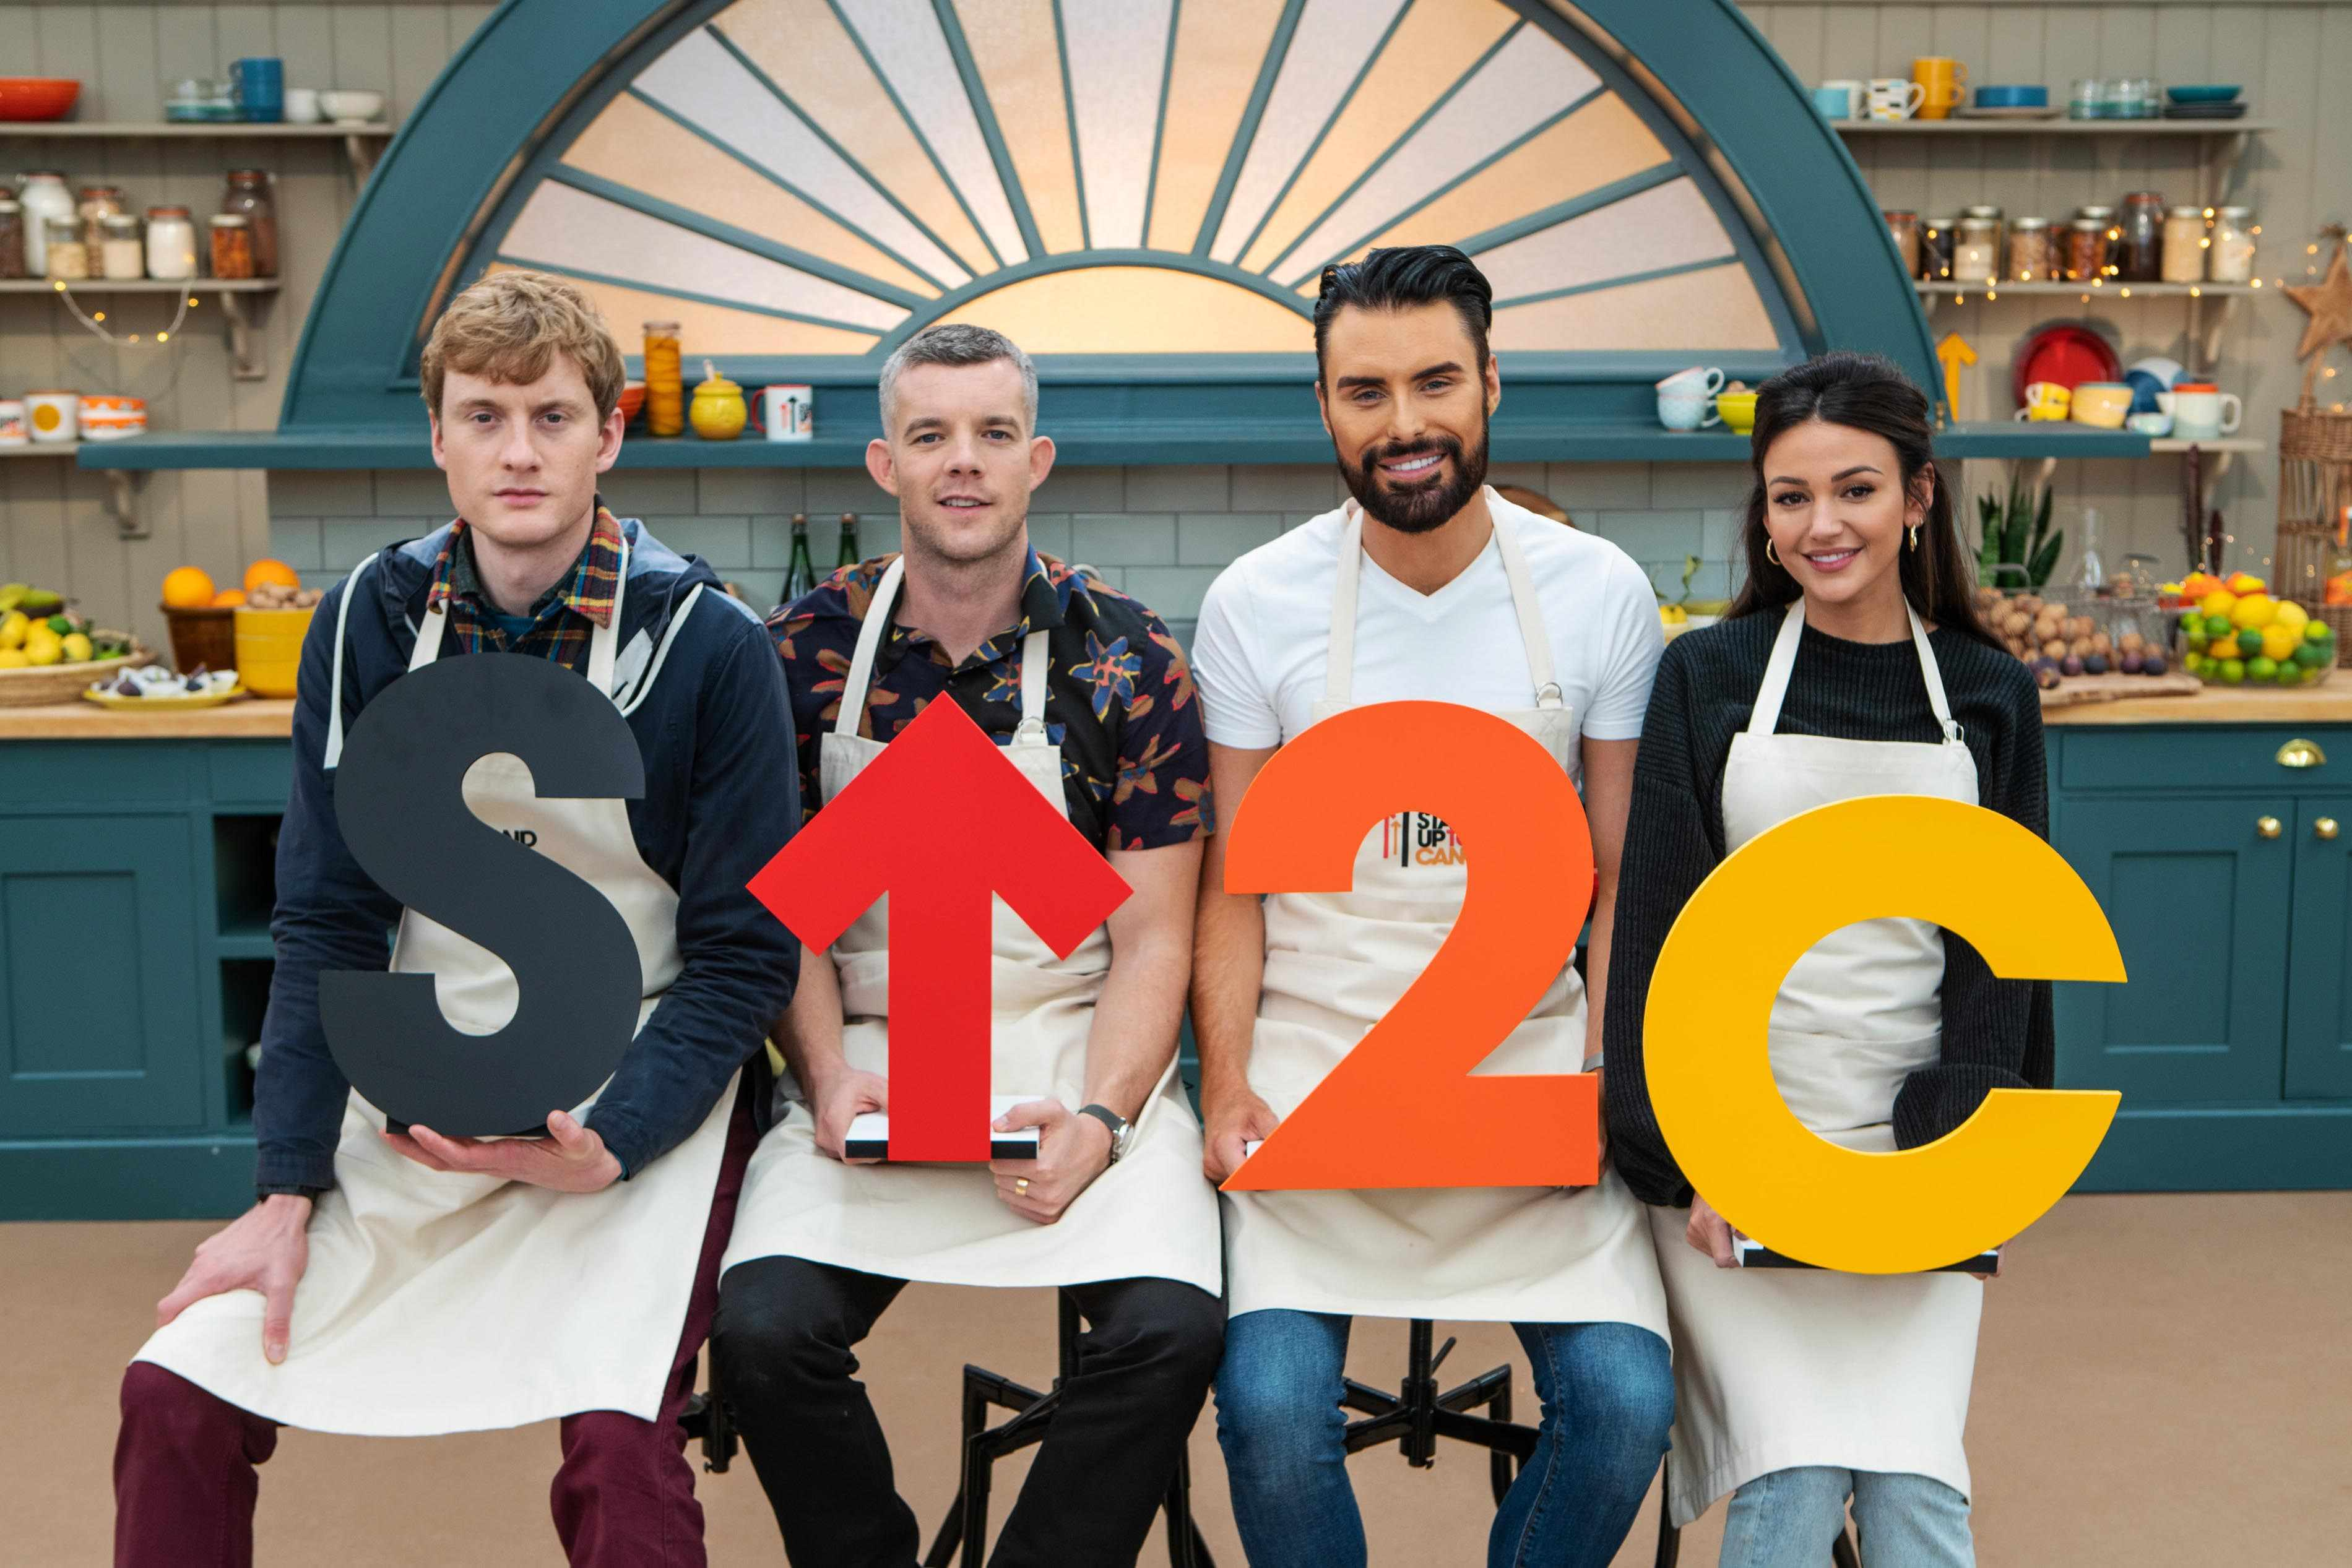 Bakers James Acaster, Russell Tovey, Rylan Clark-Neal and Michelle Keegan (channel 4)